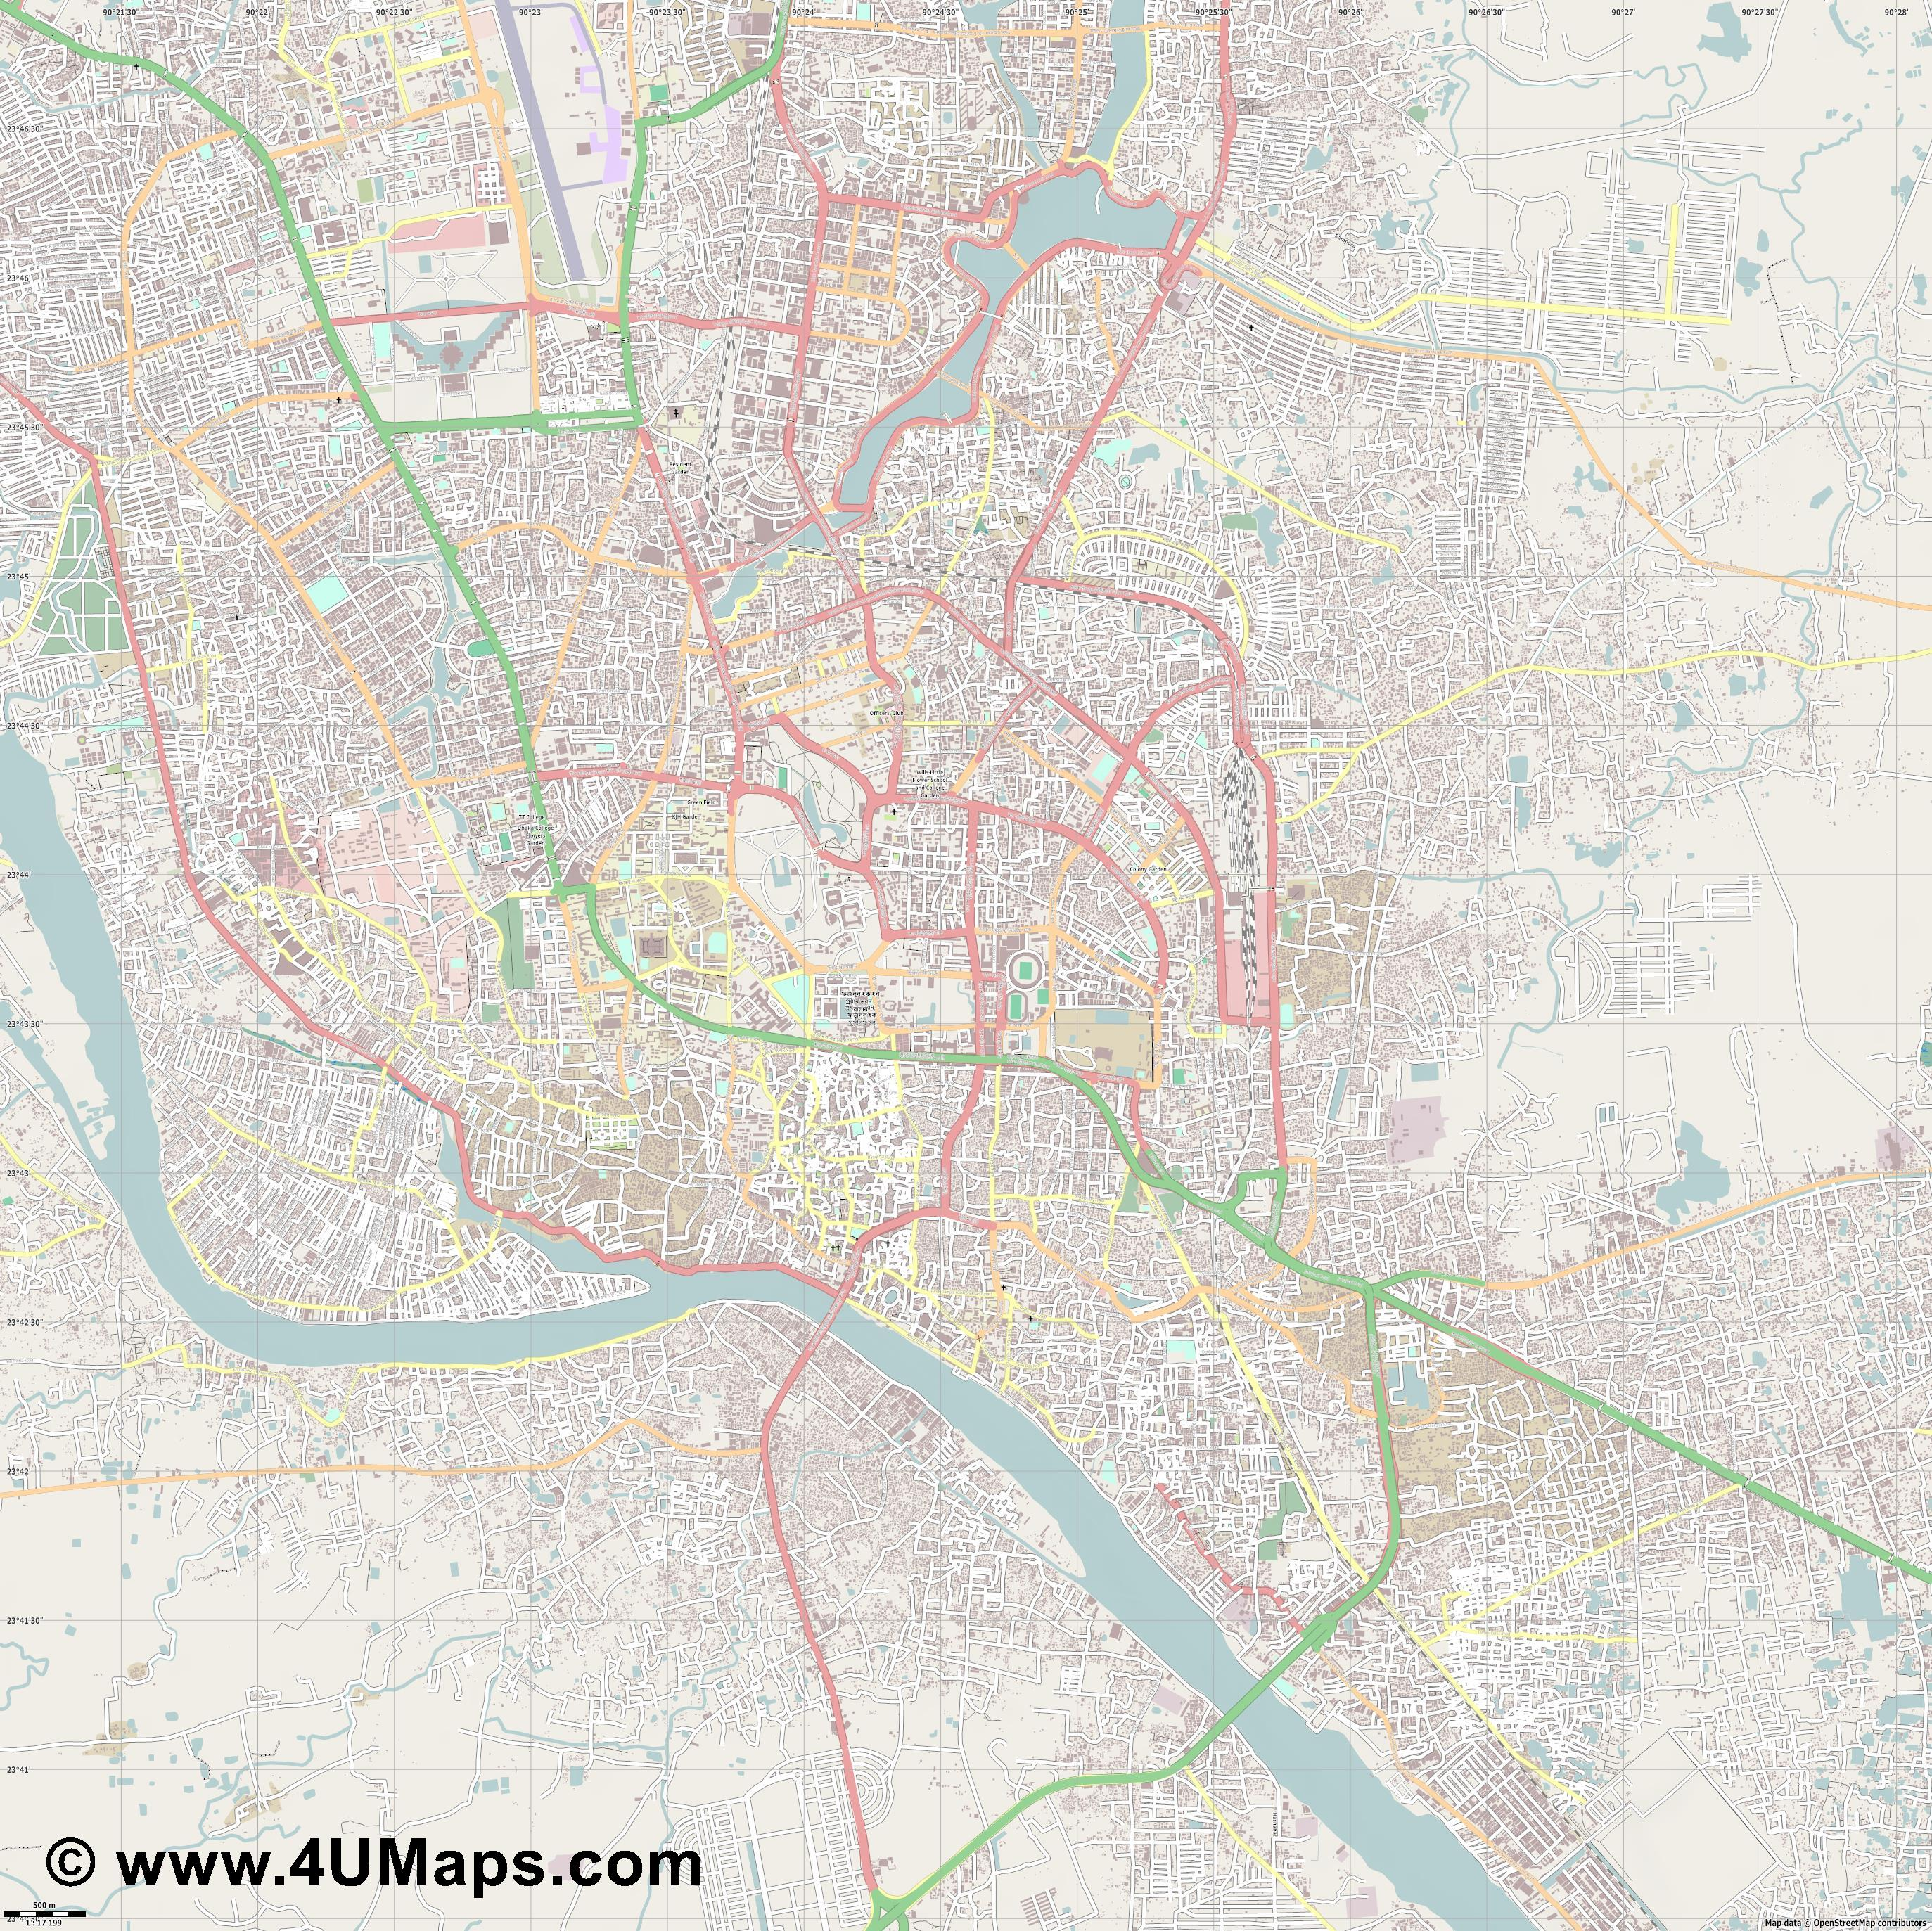 PDF, Svg Scalable Vector City Map Dhaka